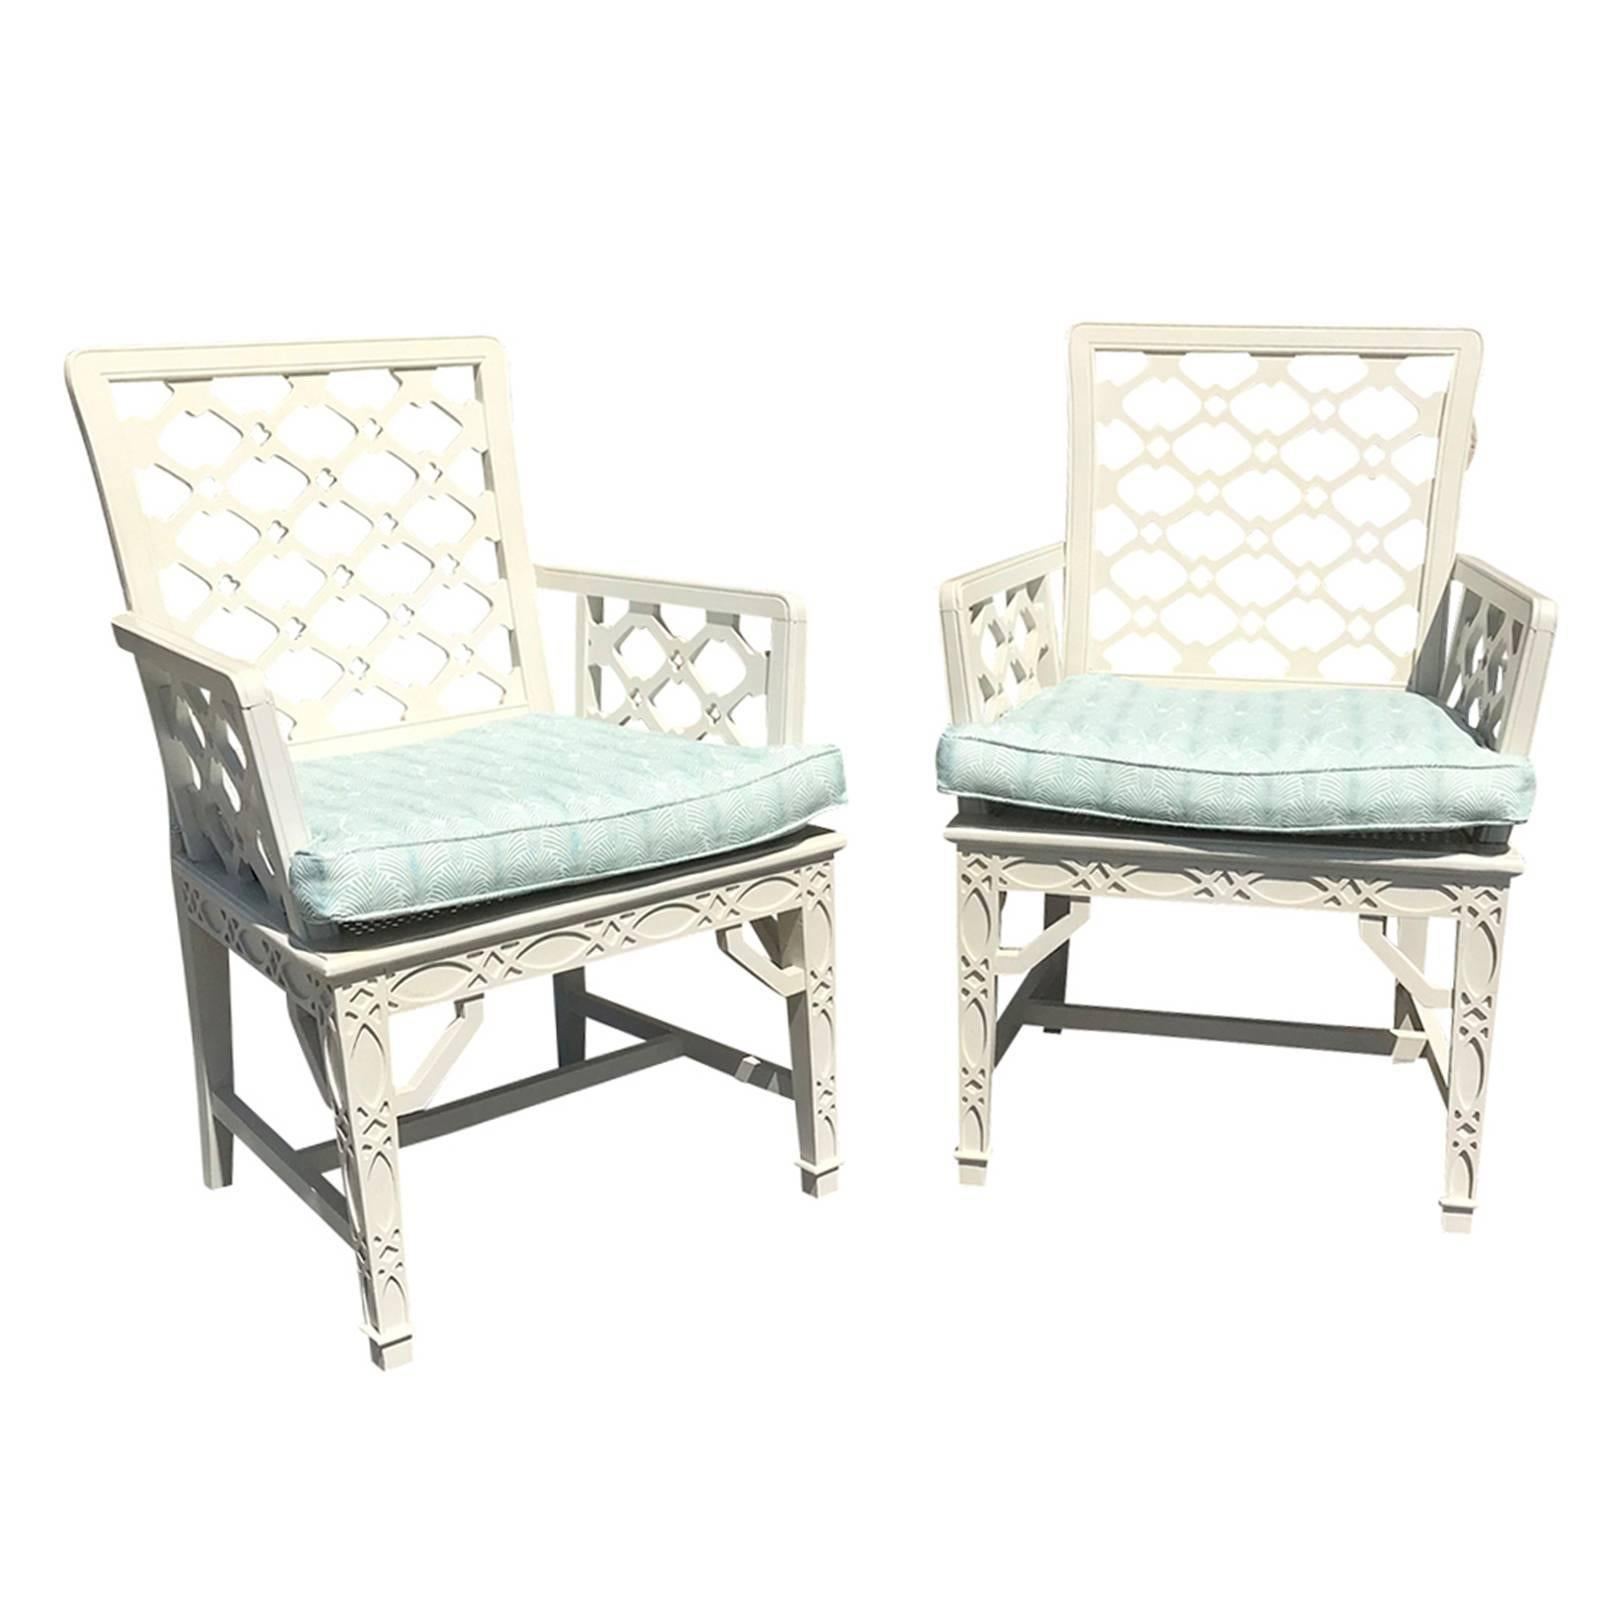 Pair Of Midcentury Painted Chippendale Chairs, Custom Paint For Sale